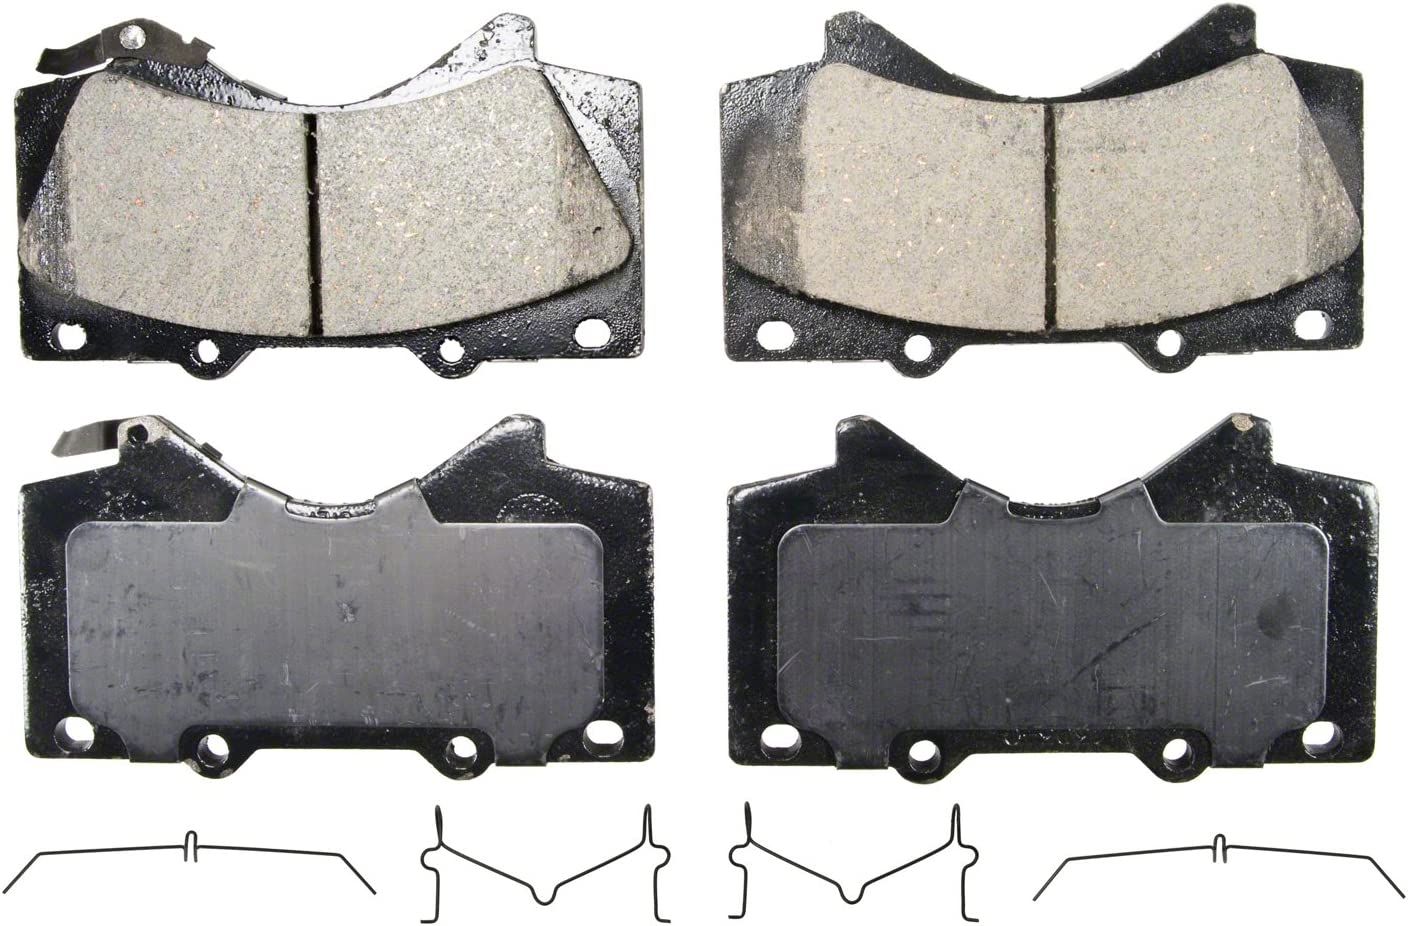 Hardware Kits Not Included DNA 2008 fits Honda Odyssey EX Rear Ceramic Brake Pads with Two Years Manufacturer Warranty